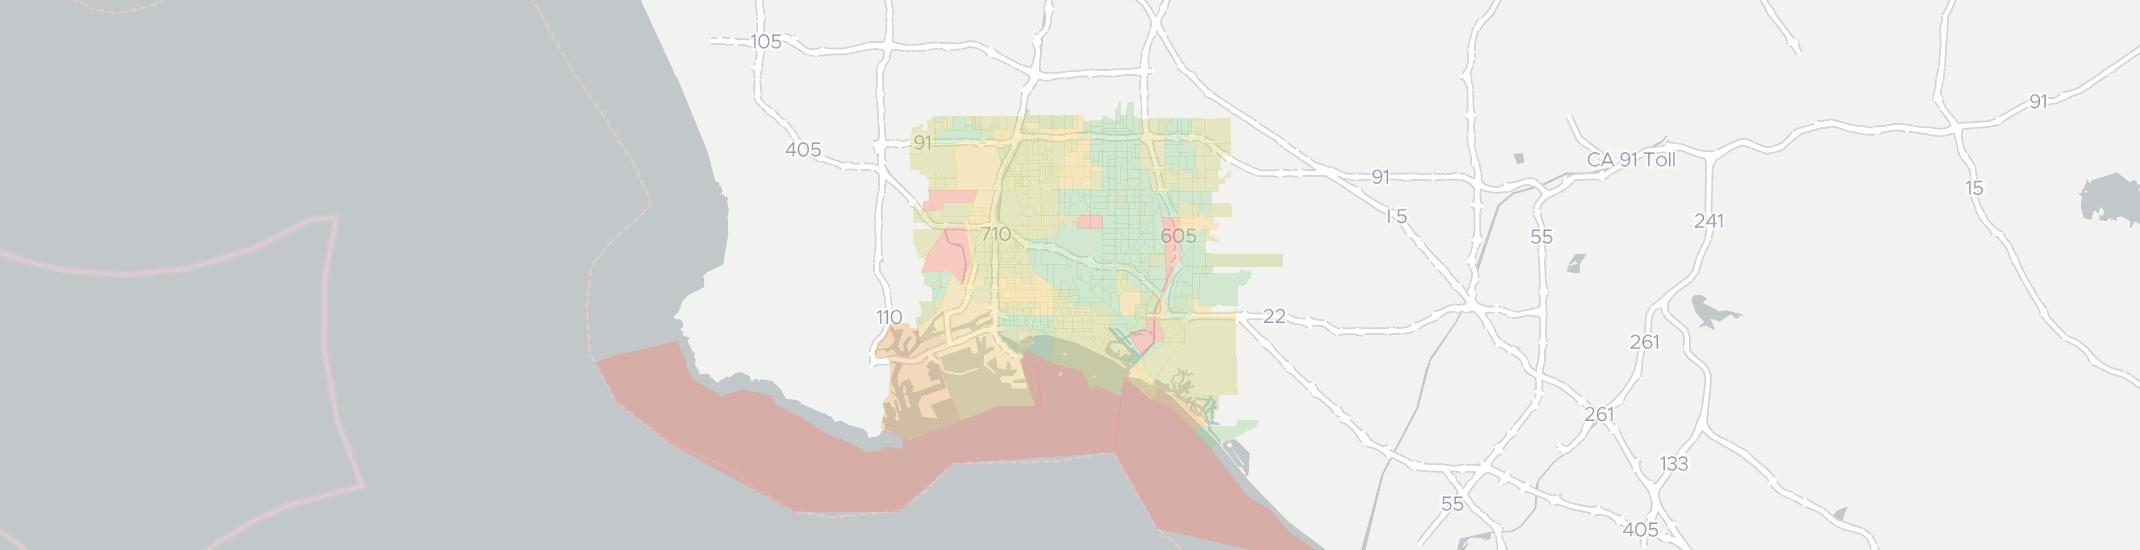 90804 Zip Code Map.Long Beach Has 22 Internet Service Providers Up To 400 Mbps